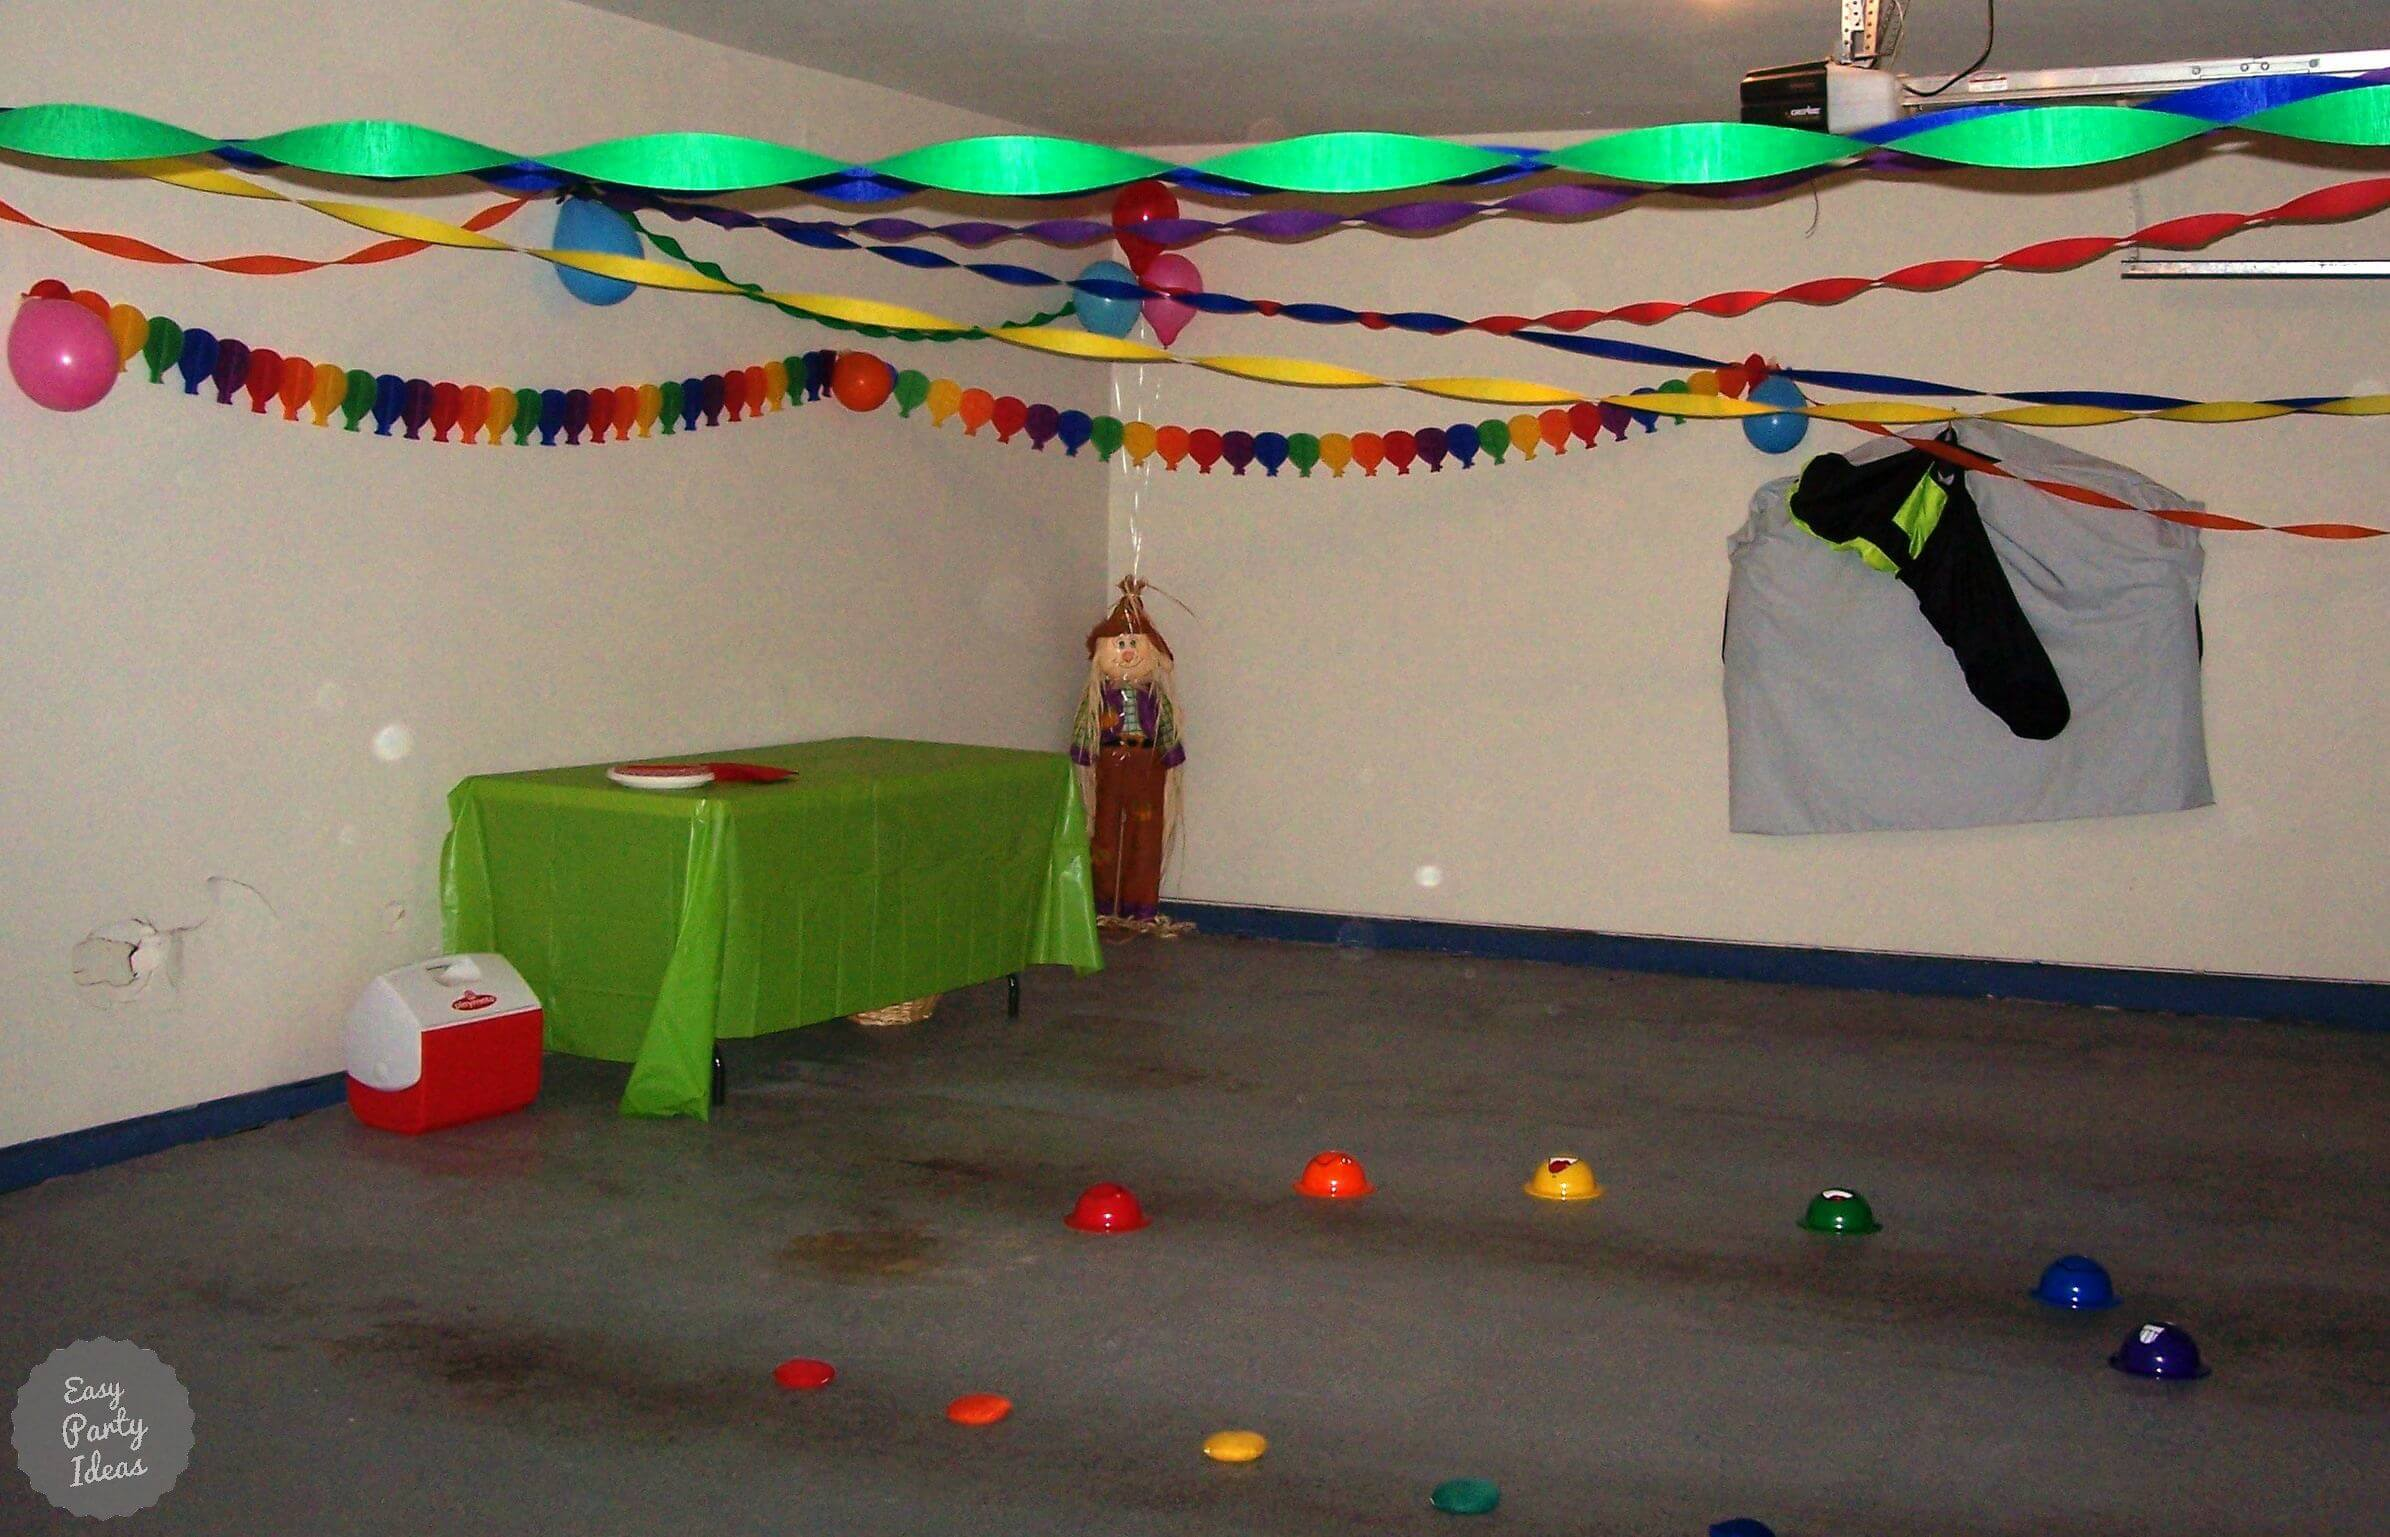 Garage decorated for a Wizard of Oz Party